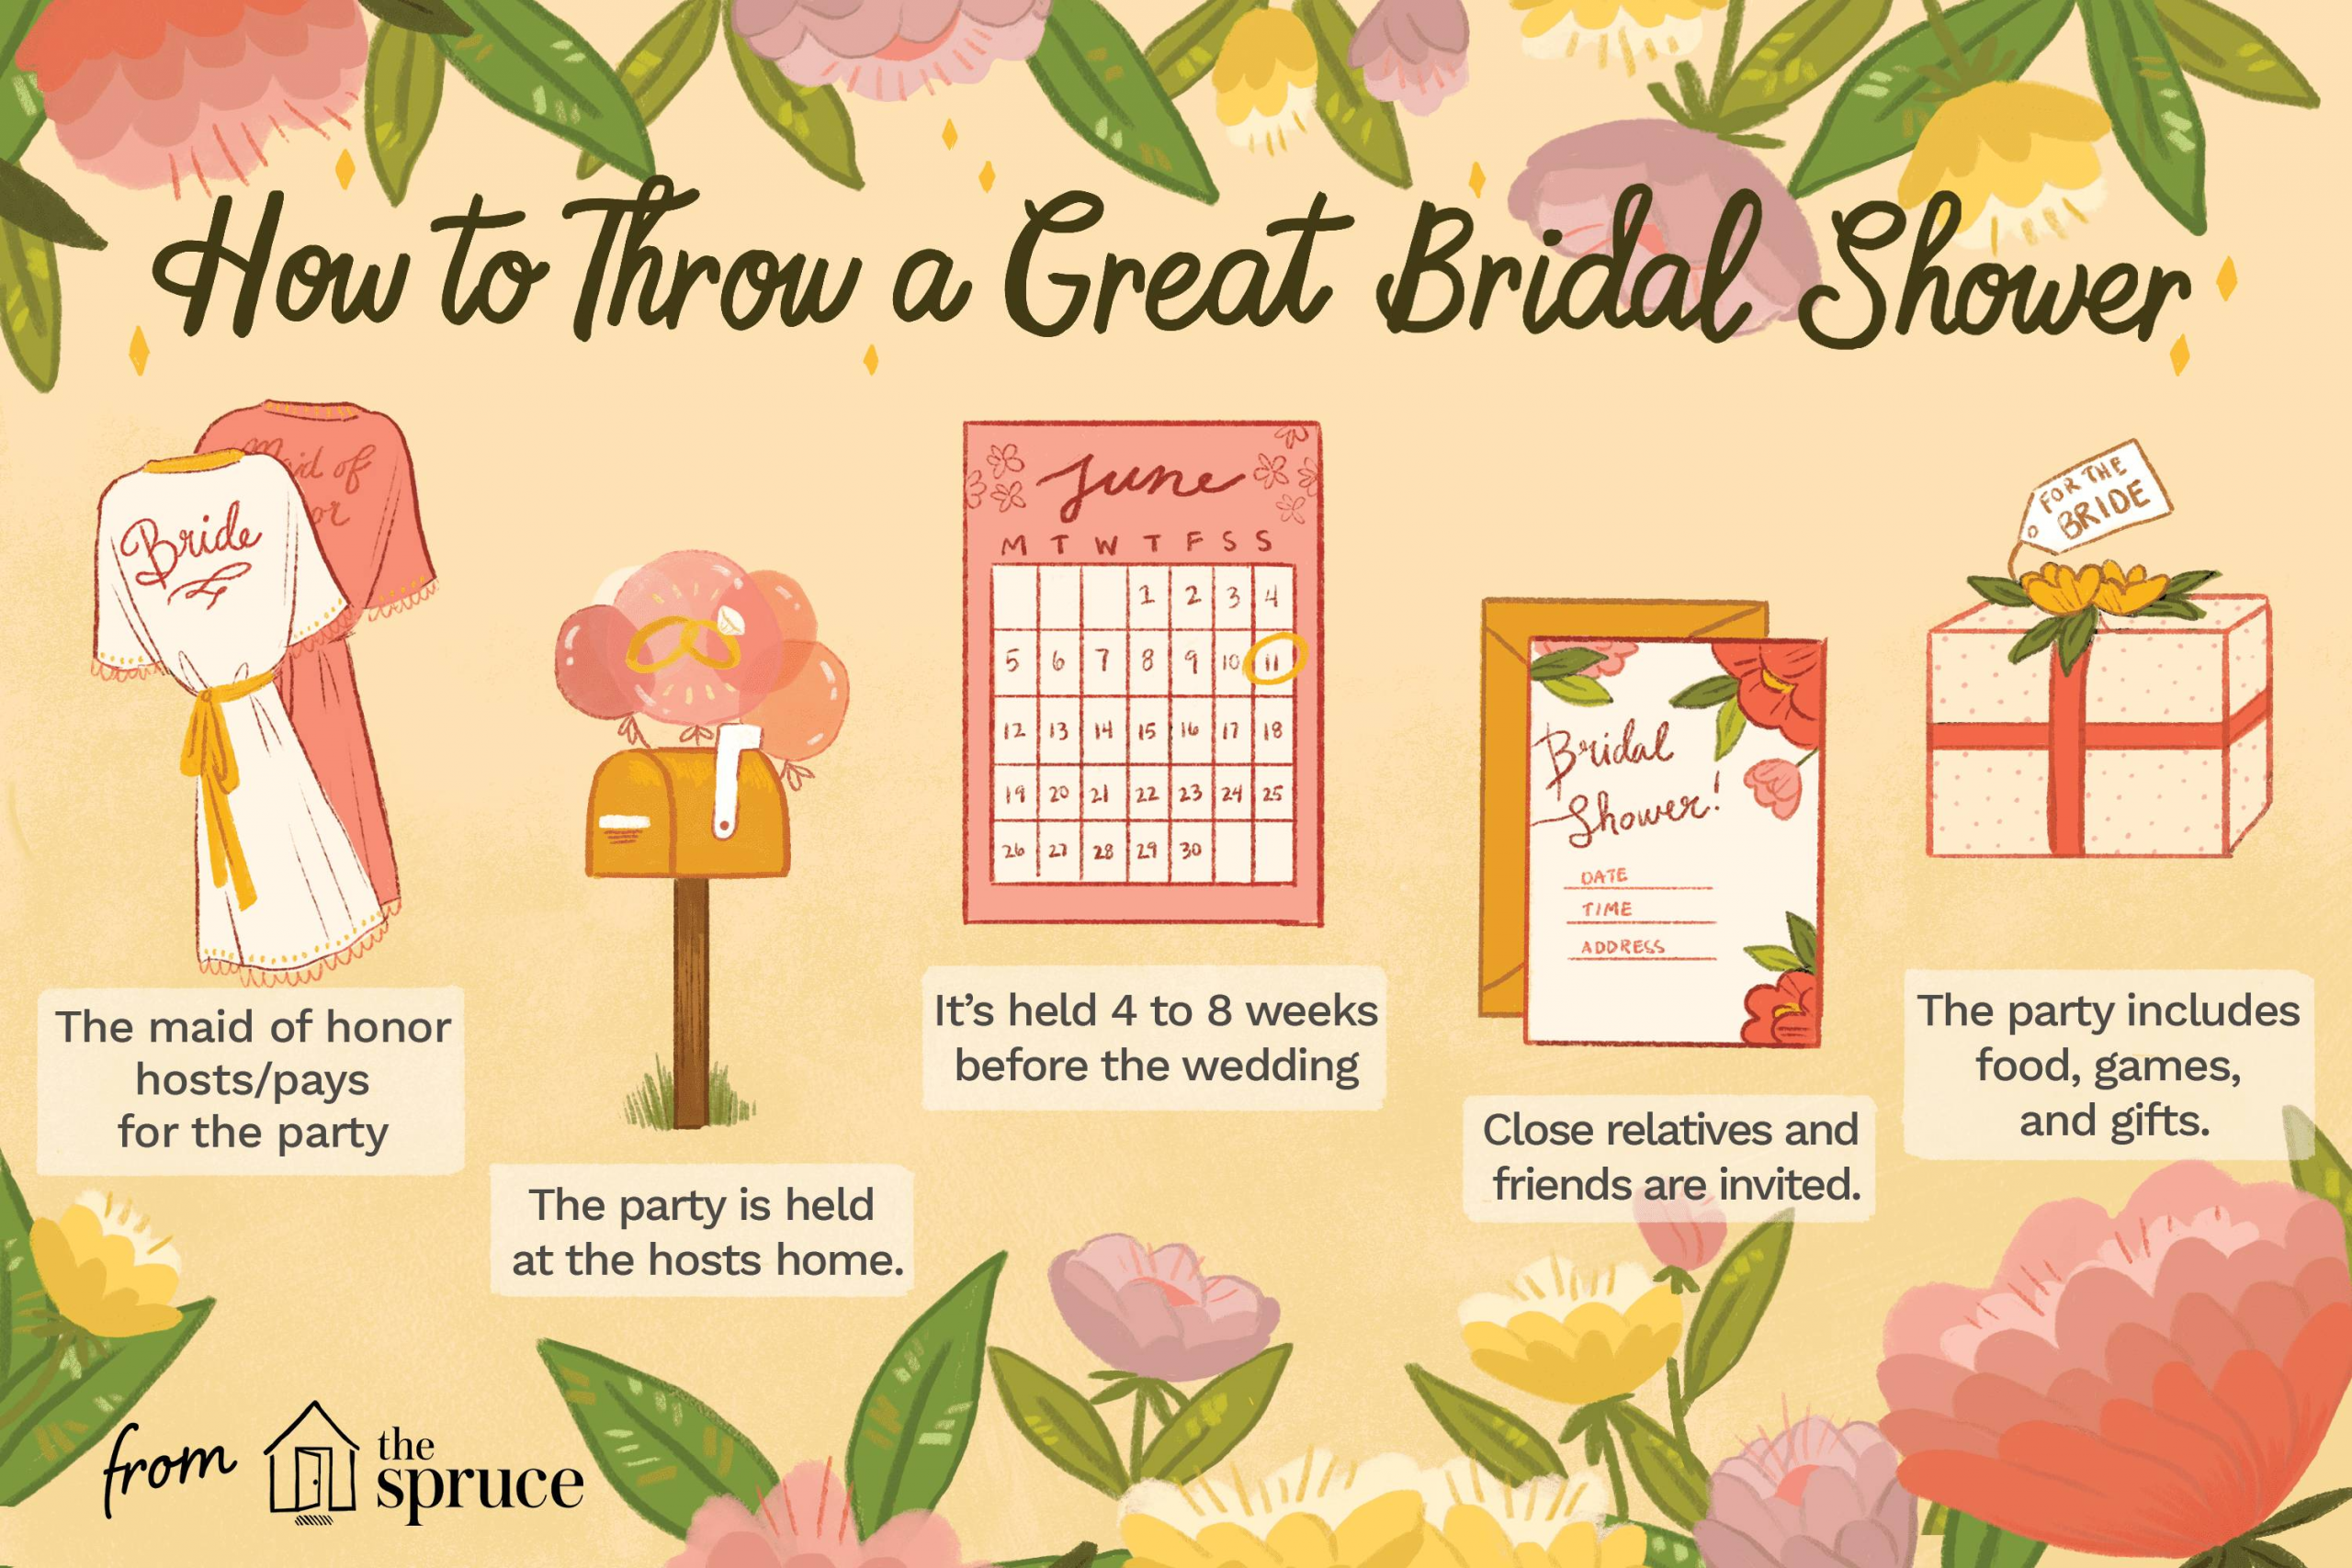 how to throw a great bridal shower V4 8af04cedcb3e4057bb6ed44e7cd4cfc5